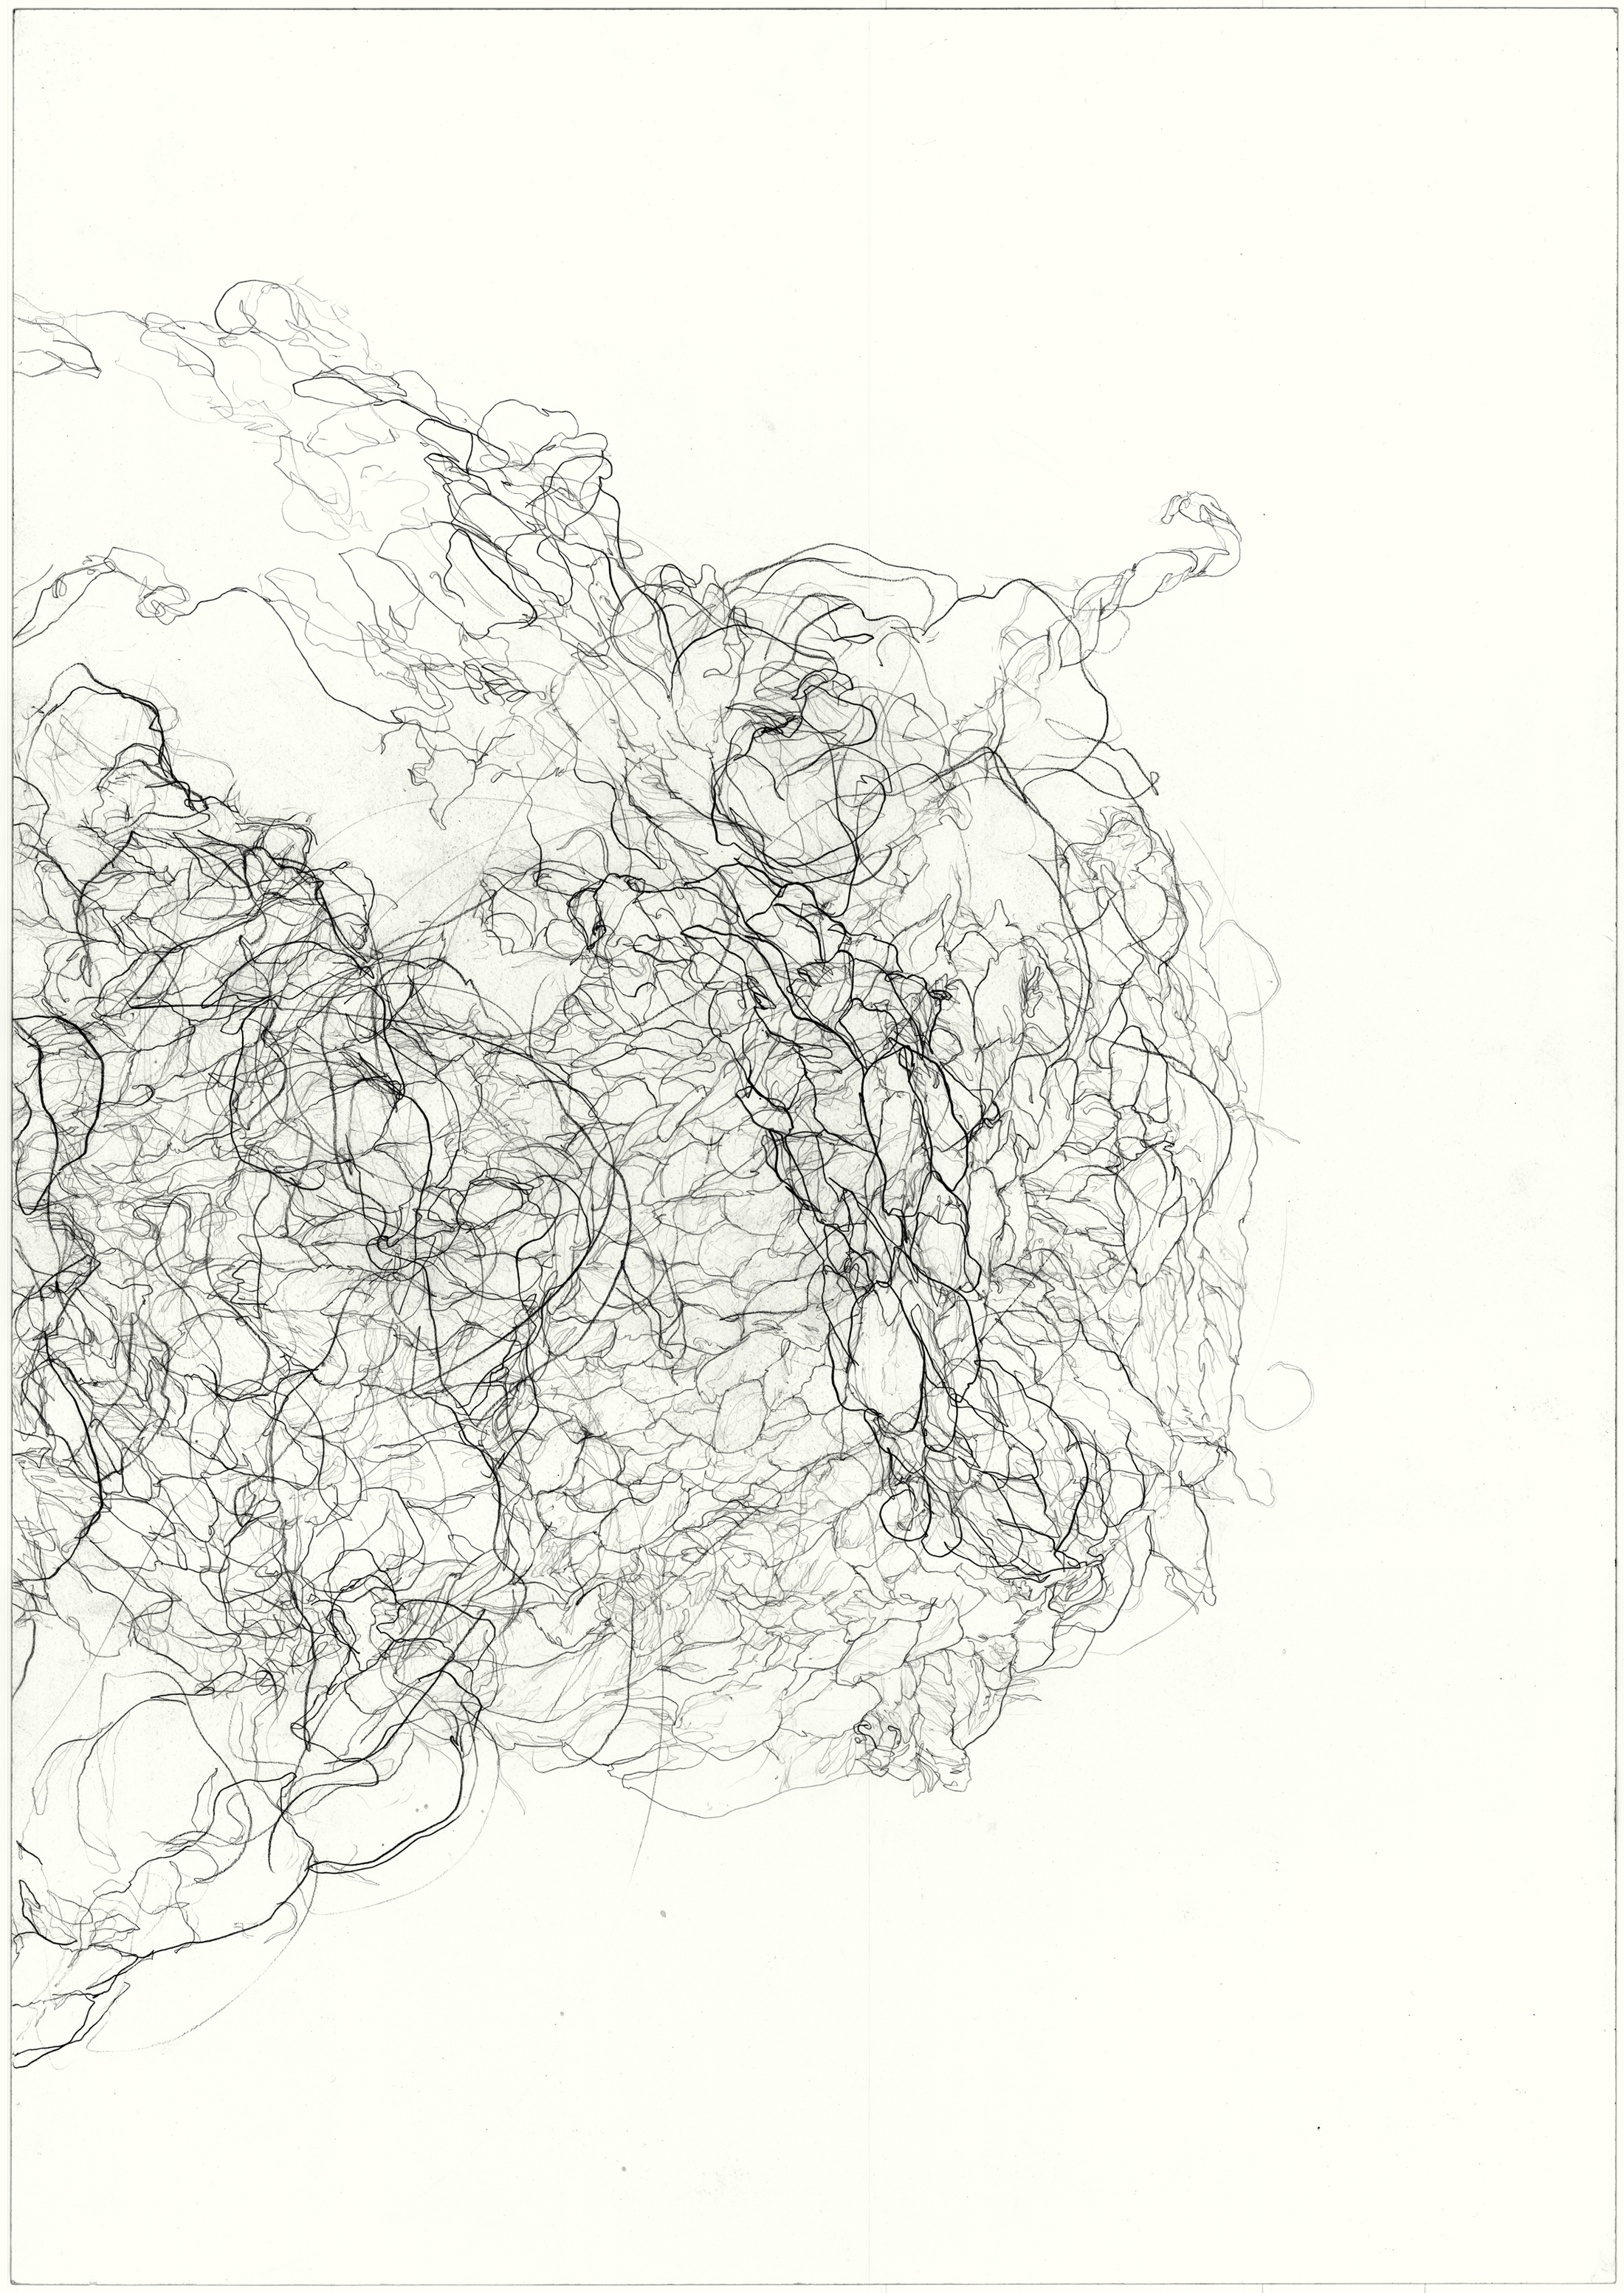 Strangle  2011, pencil on paper, 84.1 cm x 59.5 cm.